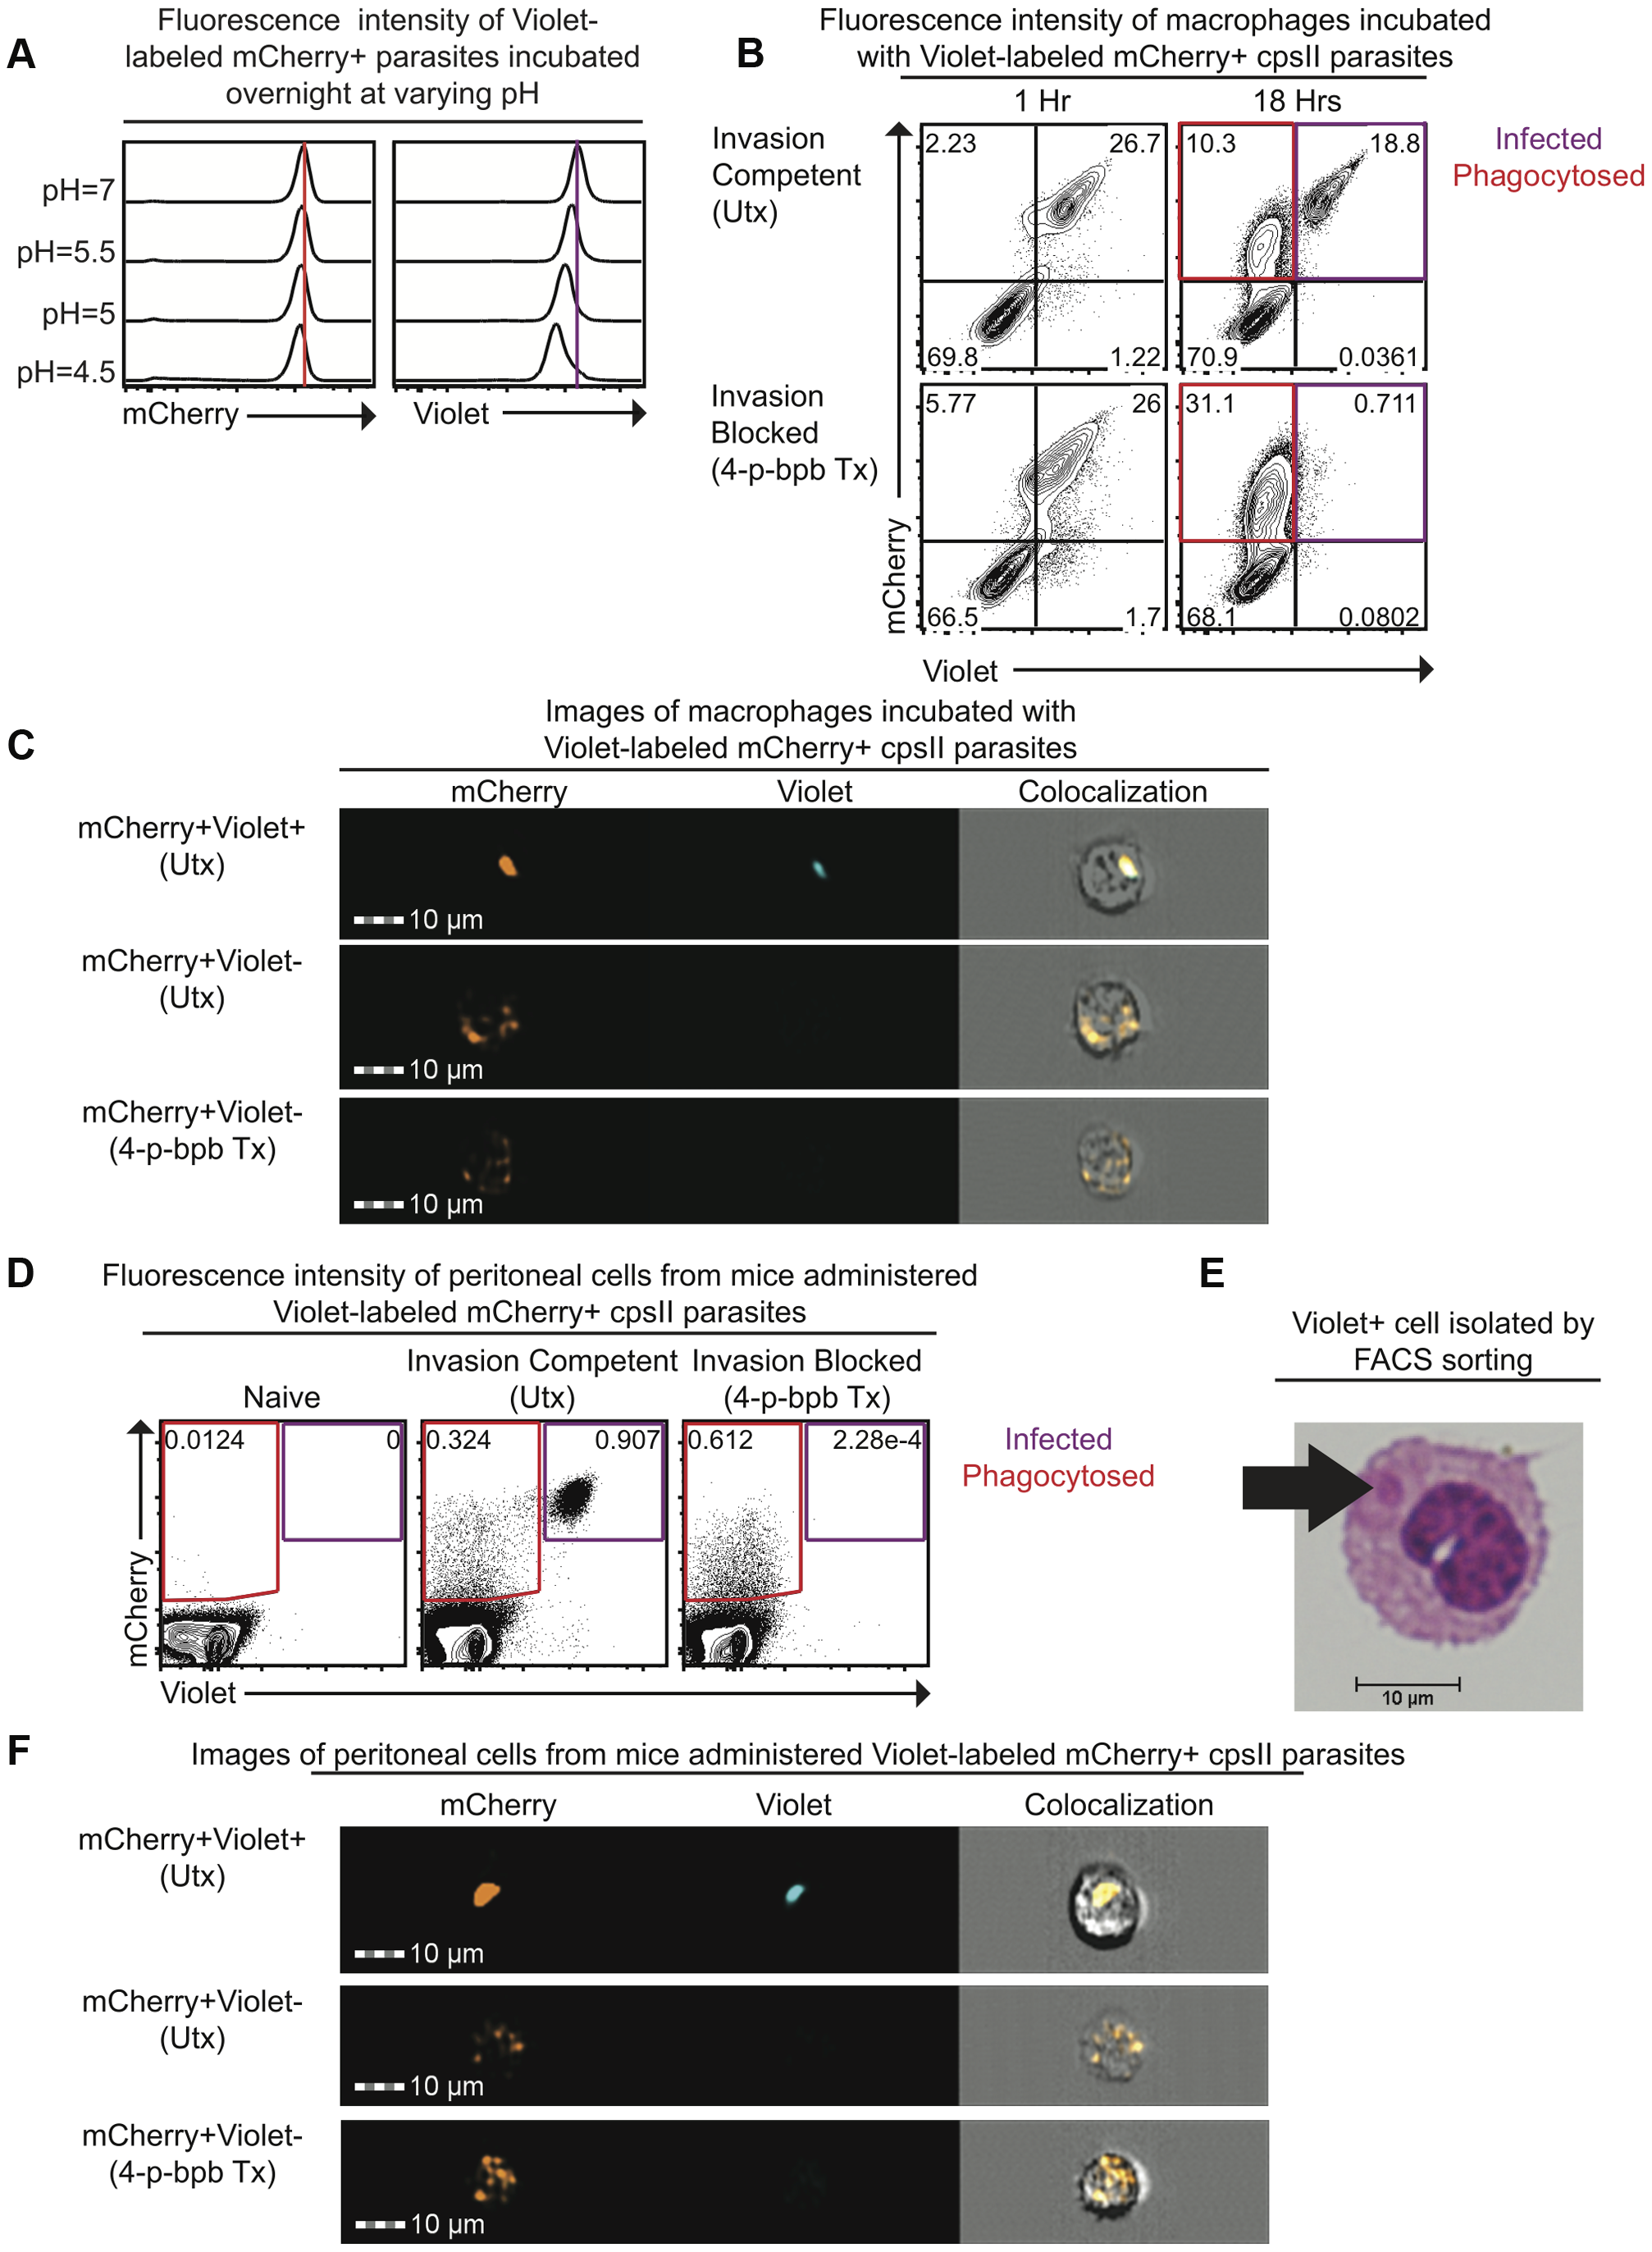 Differences in pH sensitivity of two fluorescent markers can be used to distinguish parasites that have been phagocytosed from those that actively invade host cells.